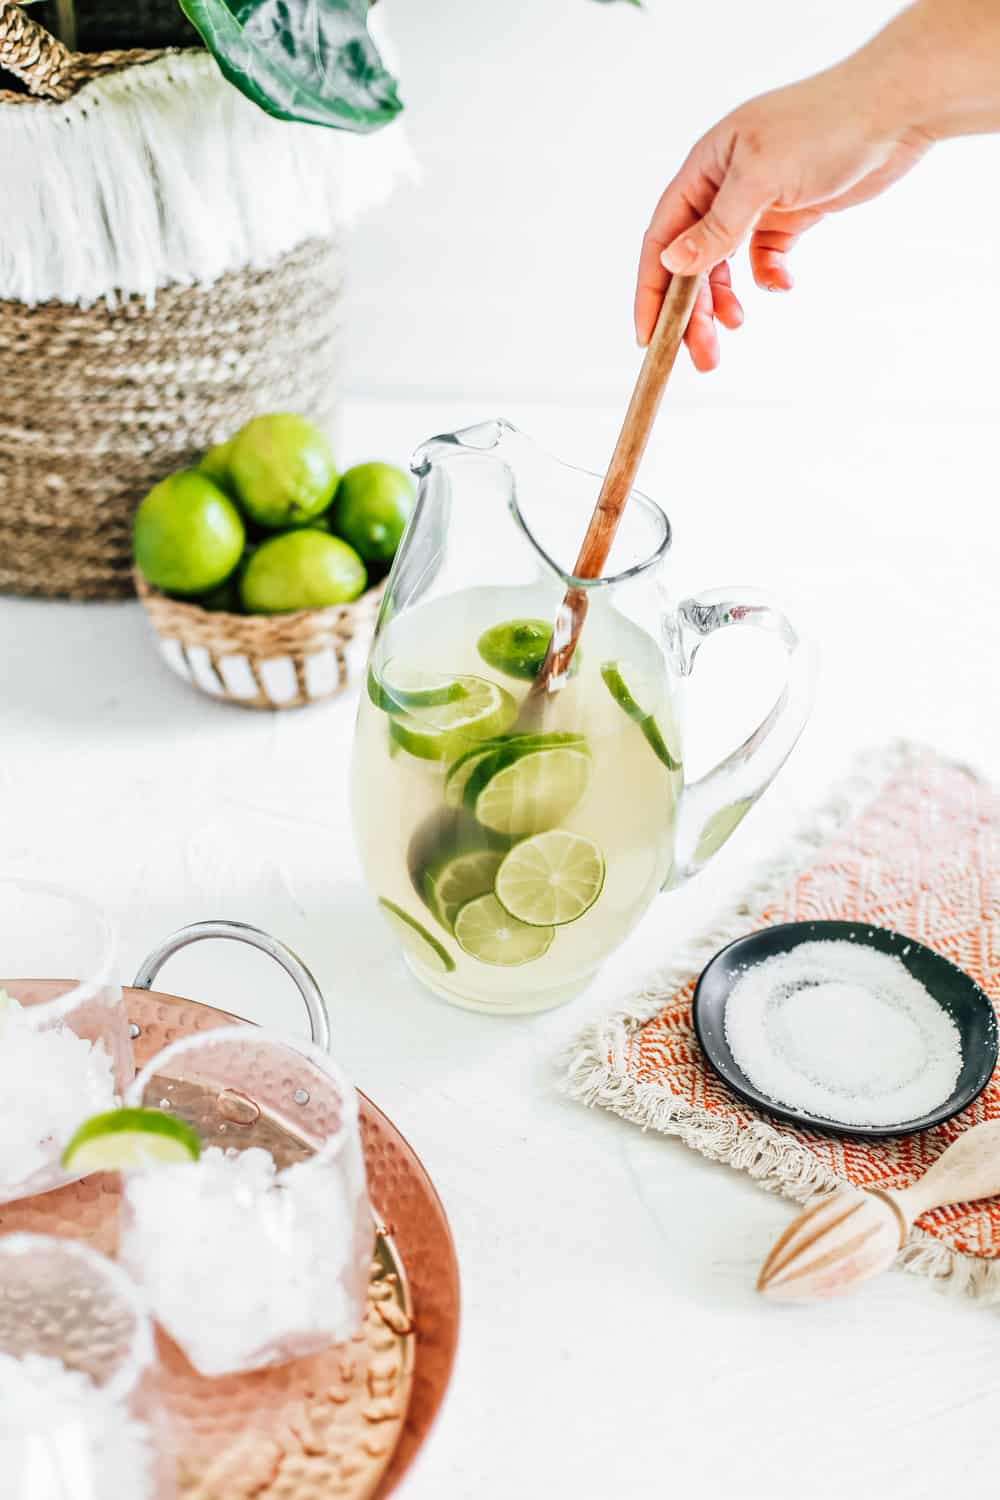 A pitcher filled with a classic margarita with limes and a wooden spoon.